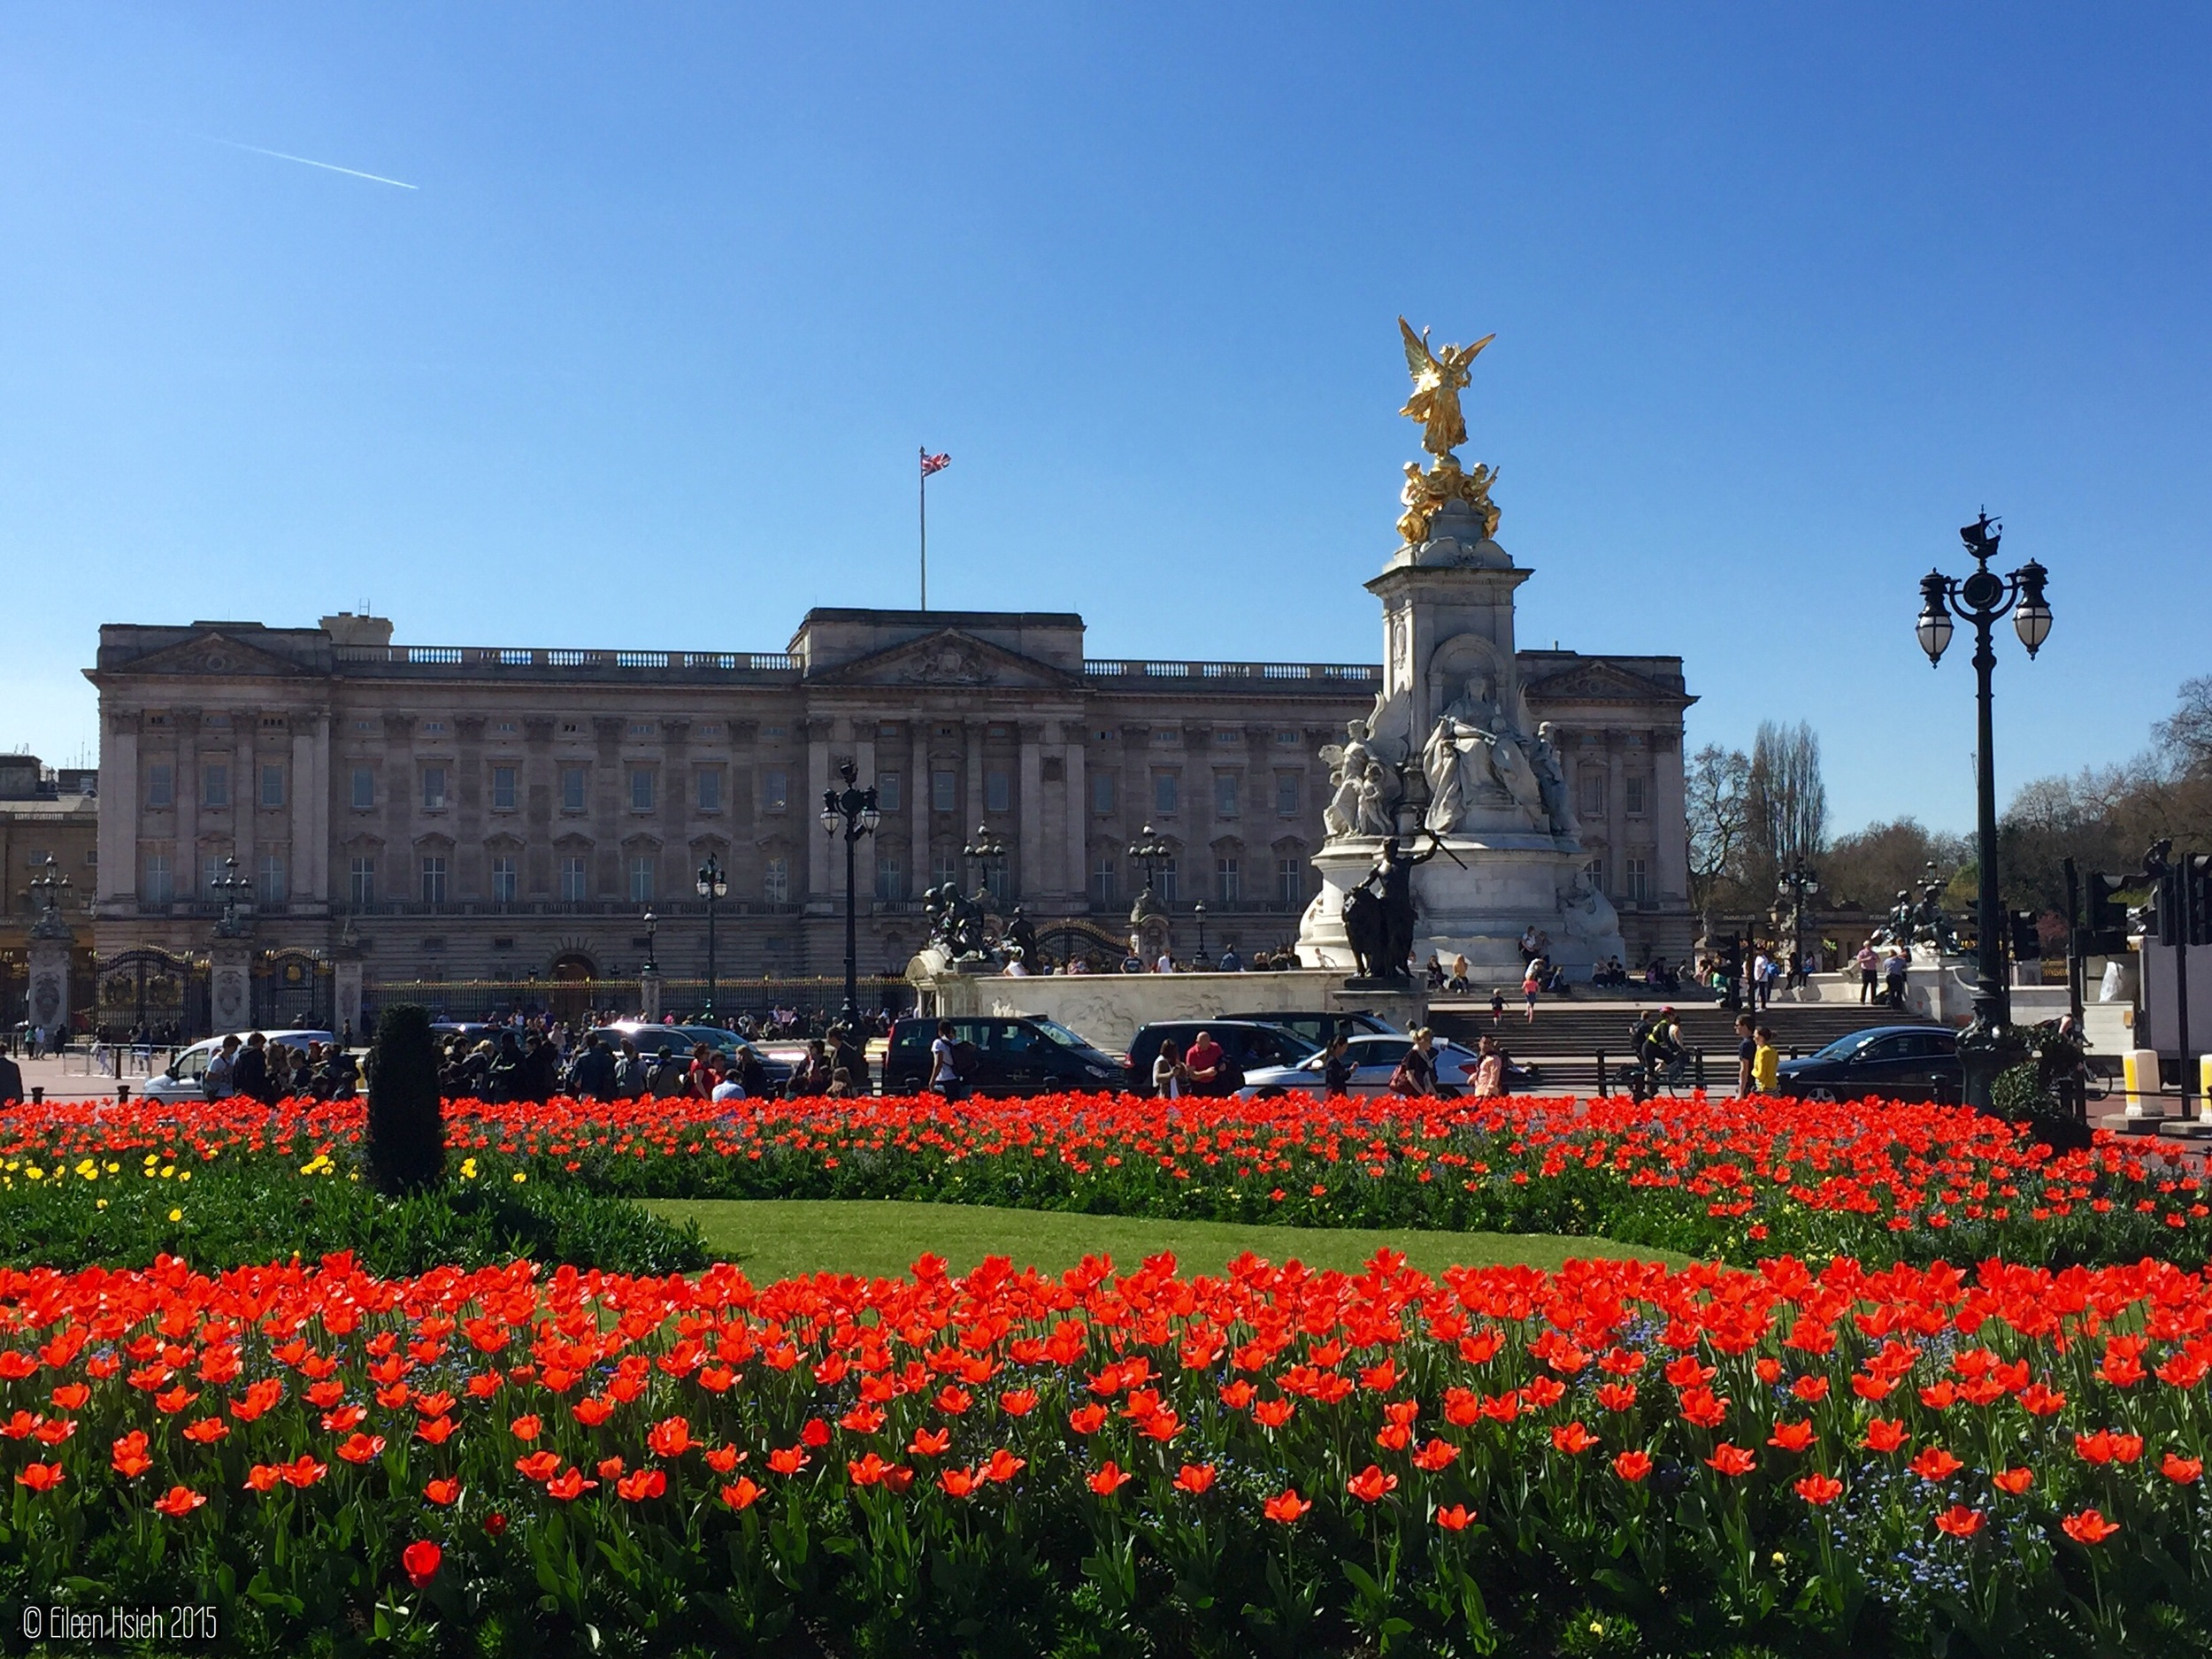 A sea of red tulips at Buckingham Palace. 白金漢宮的鬱金香花海。 © Eileen Hsieh